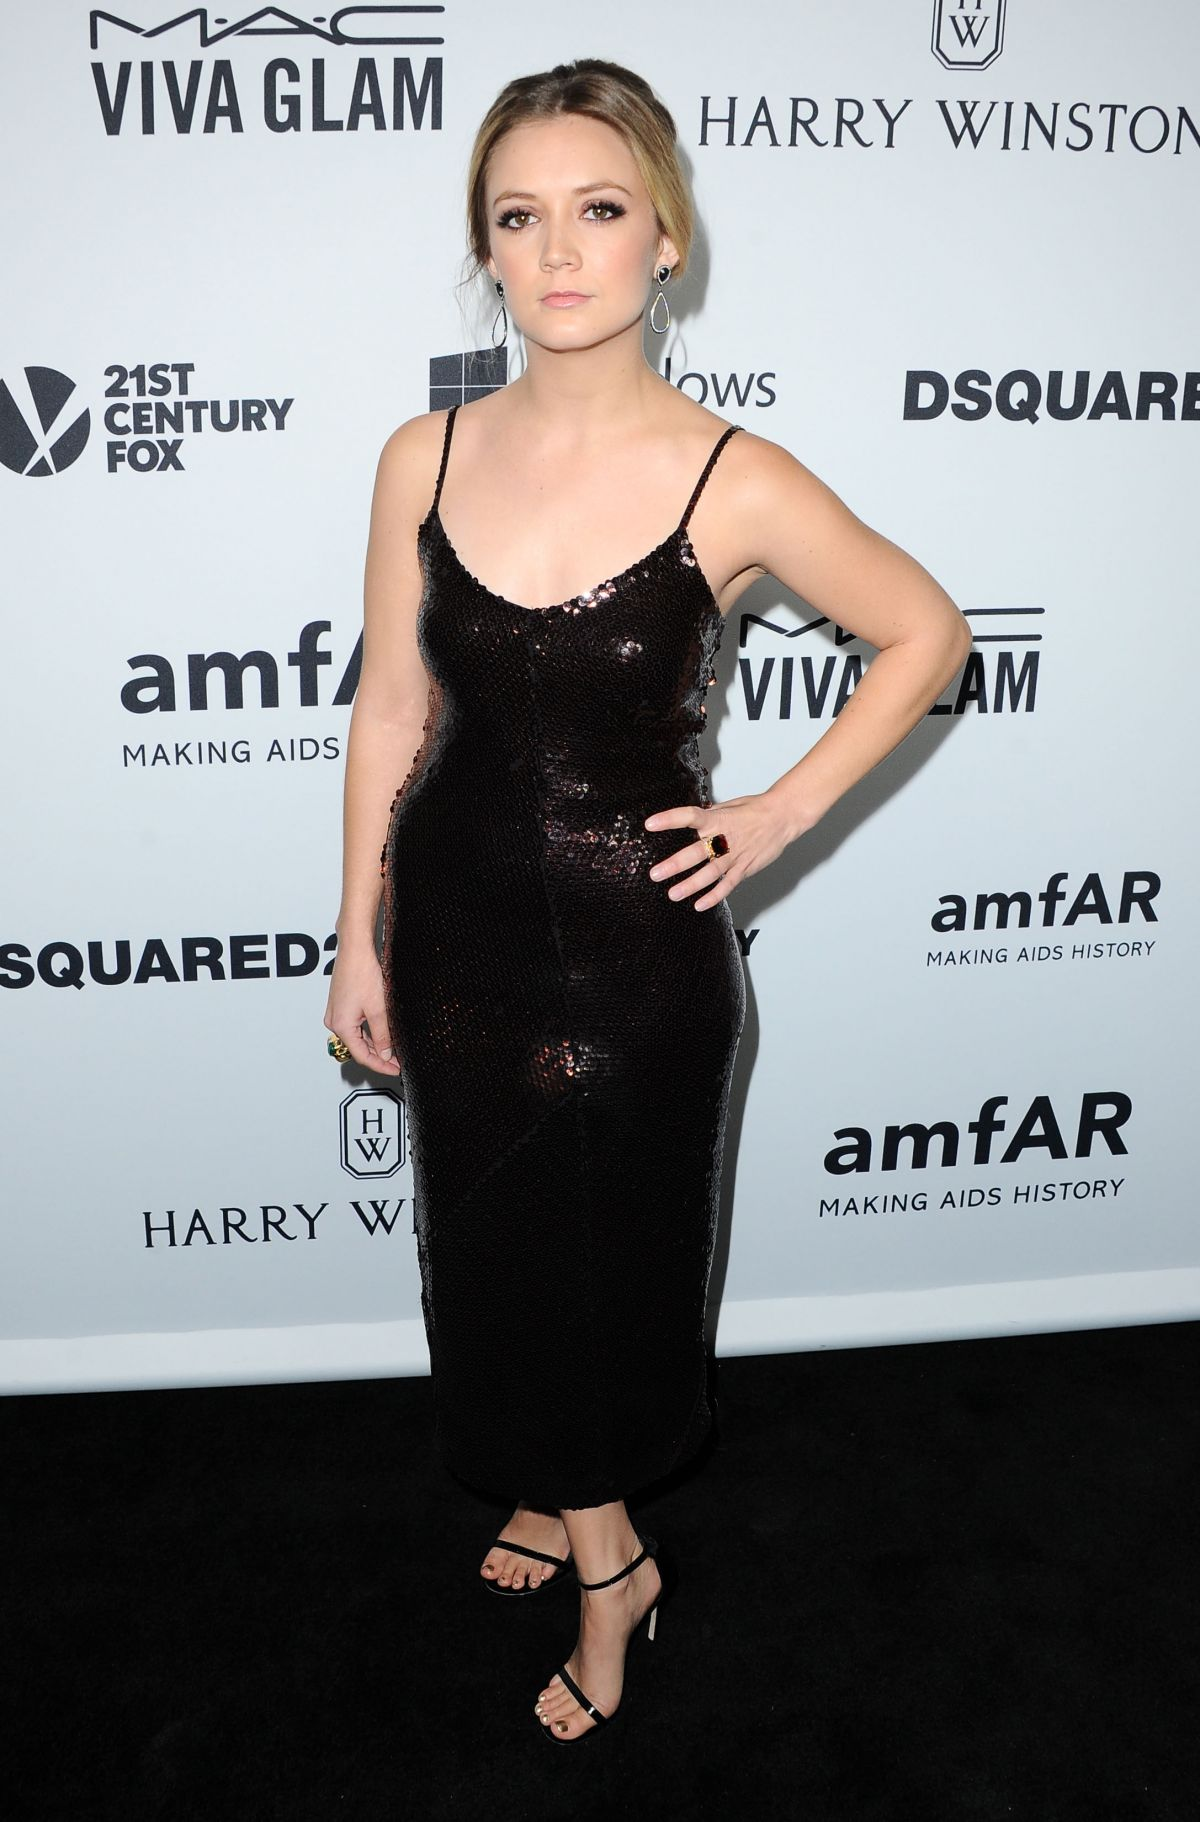 BILLIE CATHERINE LOURD at amfAR's Inspiration Gala in Hollywood 10/29/2015